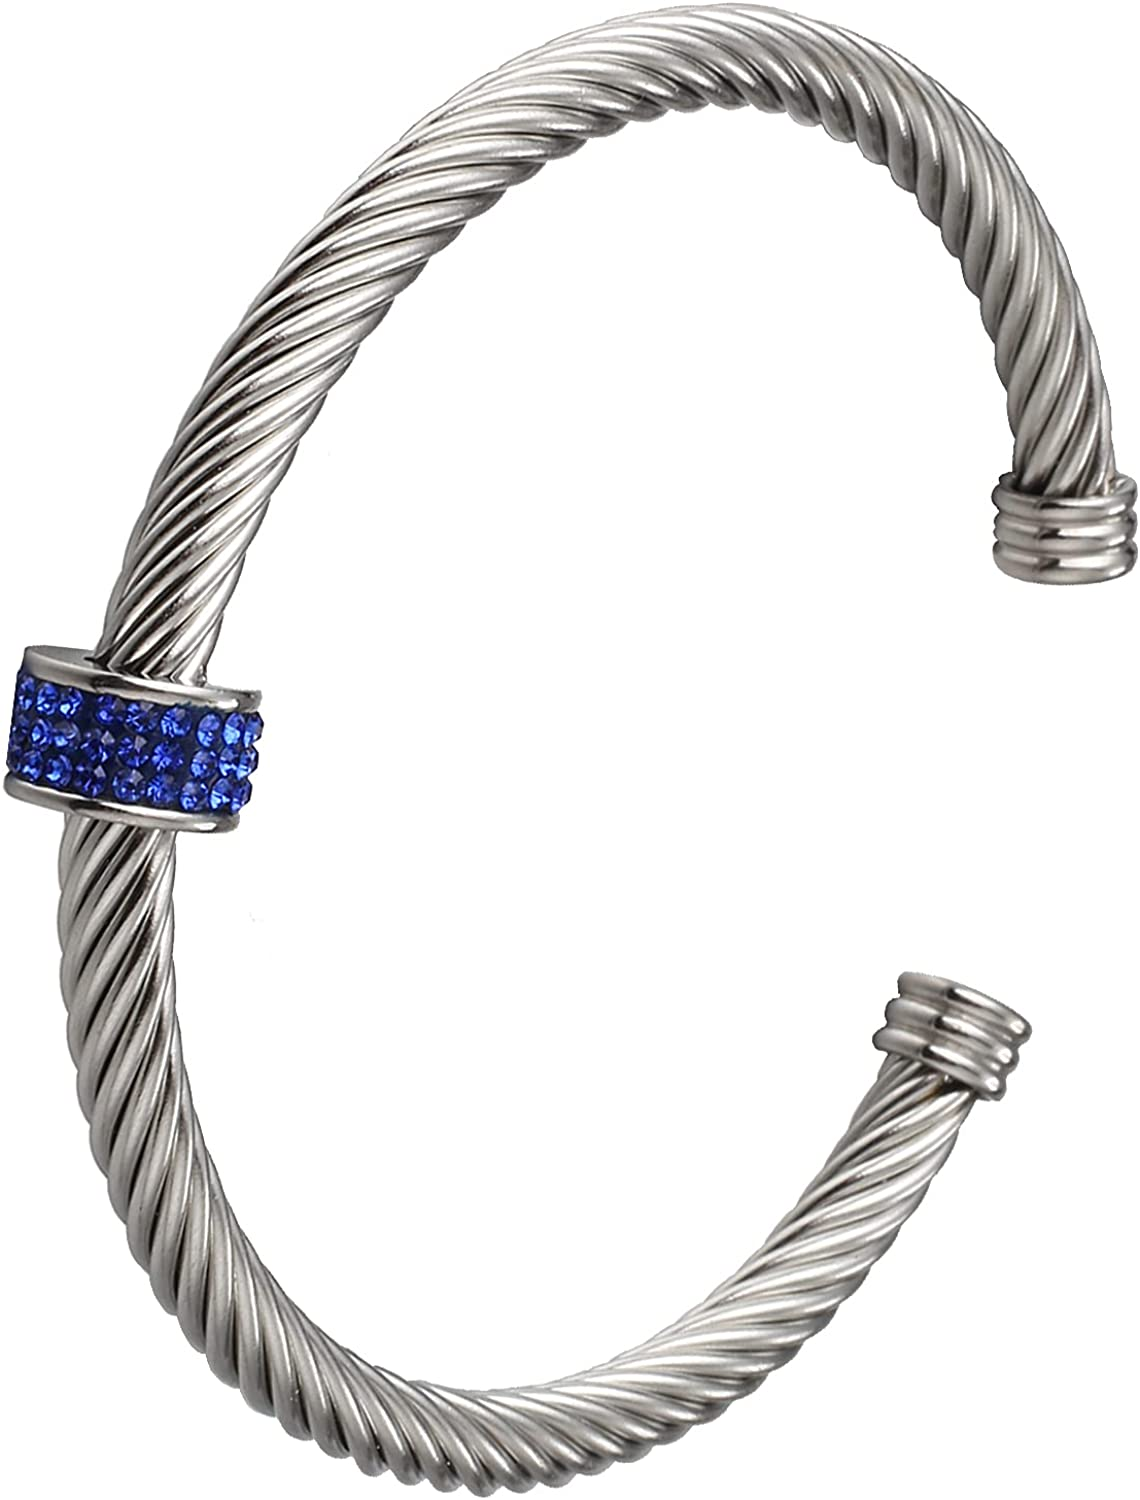 Cable Cuff Bracelets, Dorriss Stainless Steel Twisted Wire Composite Bracelet Bangles, Adjustable Elegant Antique Jewelry with Rhinestone for Women, Ladies, Girls, Teens, Gift Idea